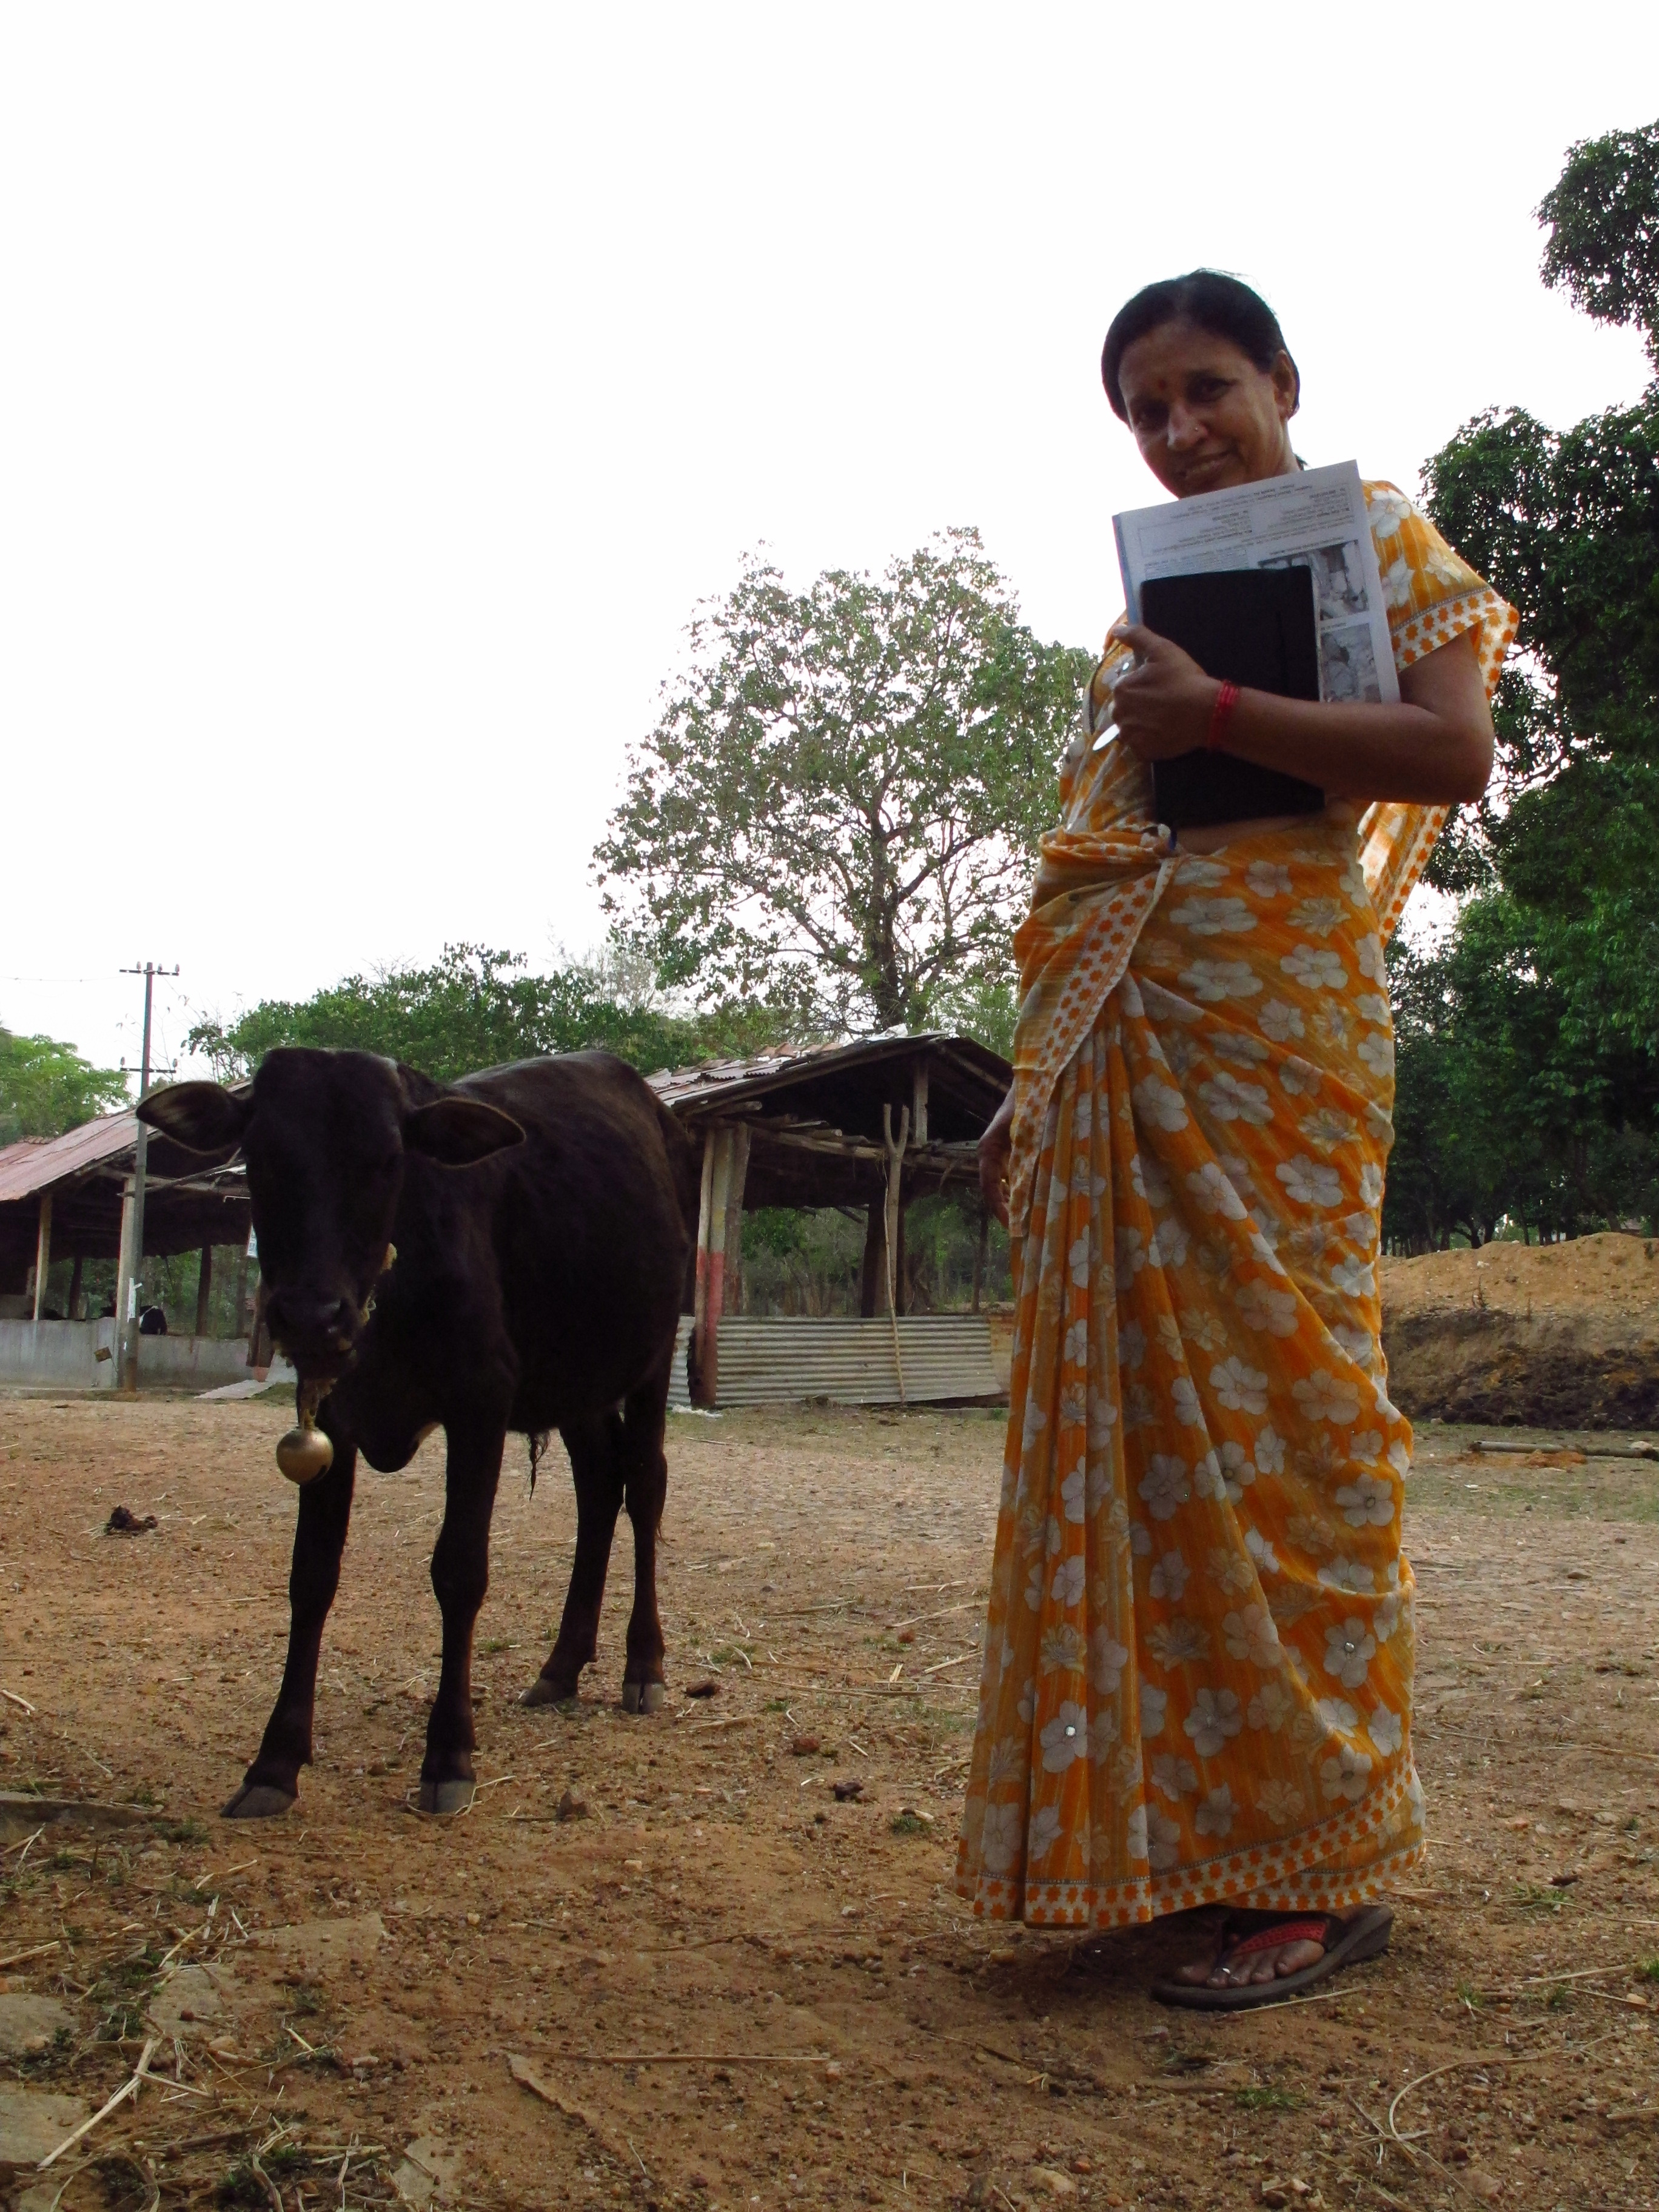 Shimoga India  City pictures : In Shimoga, India – Meeting Most of India's Indigenous Cattle ...